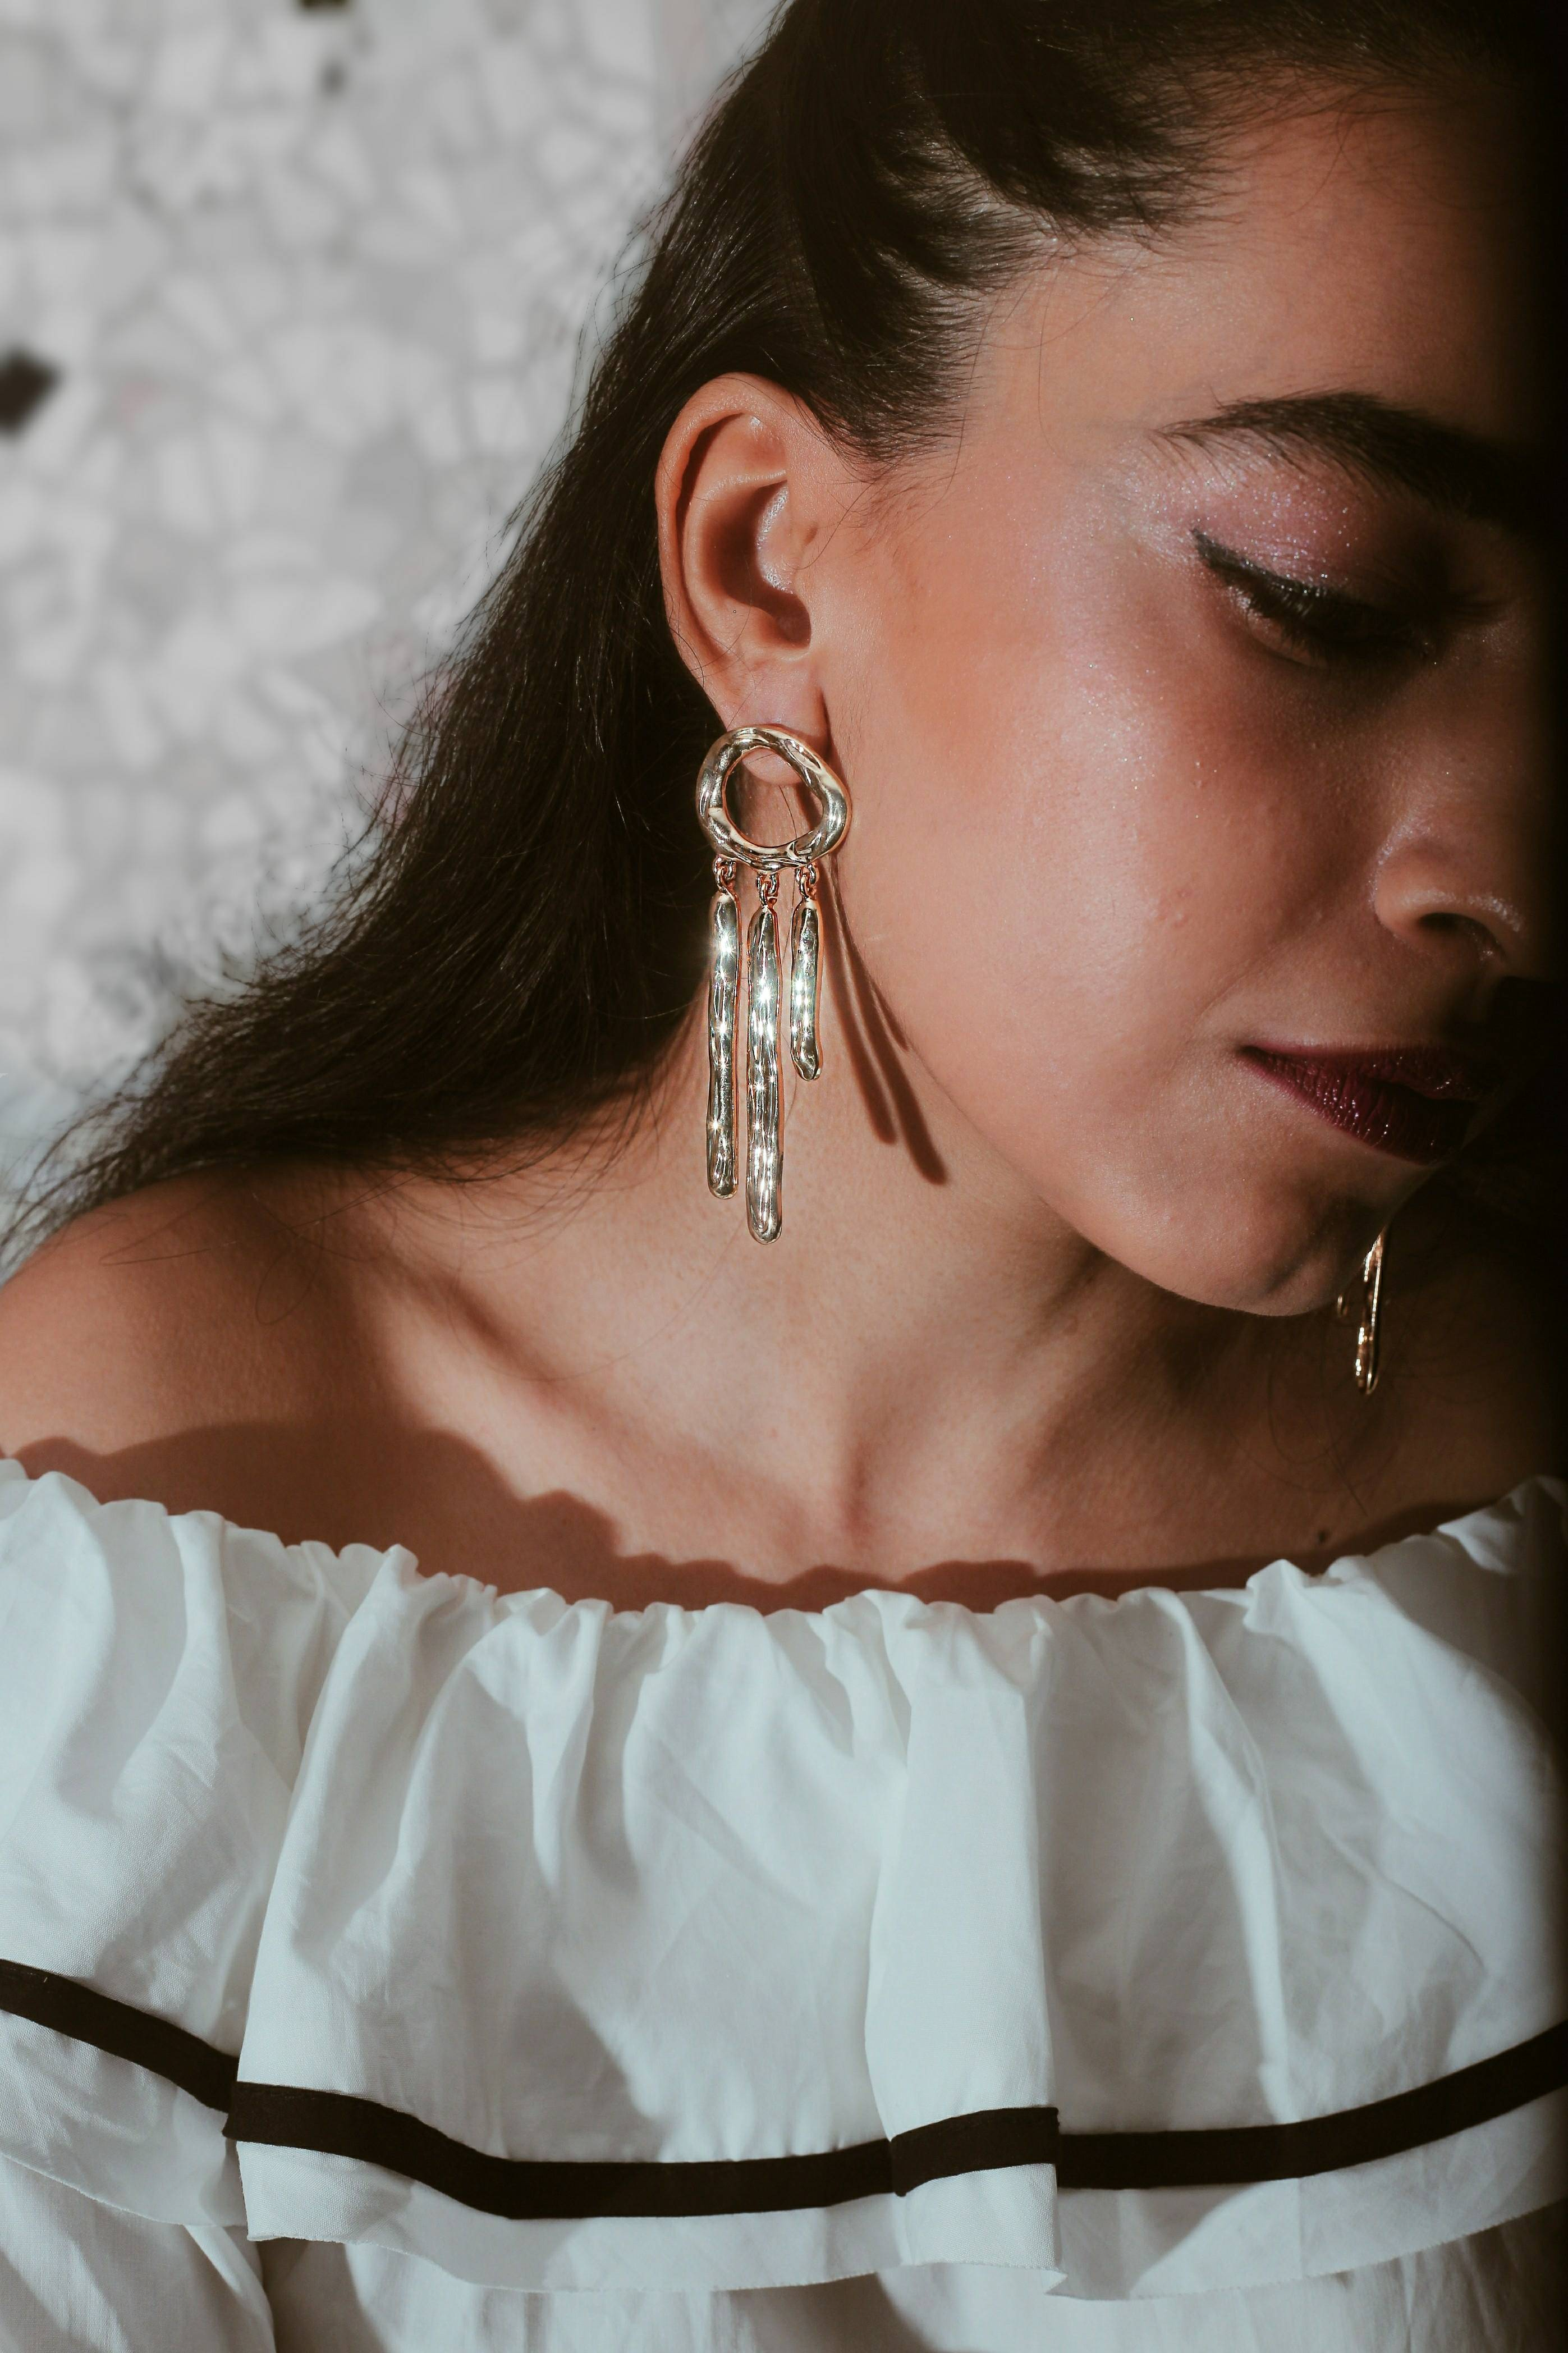 Earrings, jewelry, accessories, statement piece, statement jewelry, jewellery, makeup, editorial shoot, contouring, gold jewelry, minimal, miss match earrings